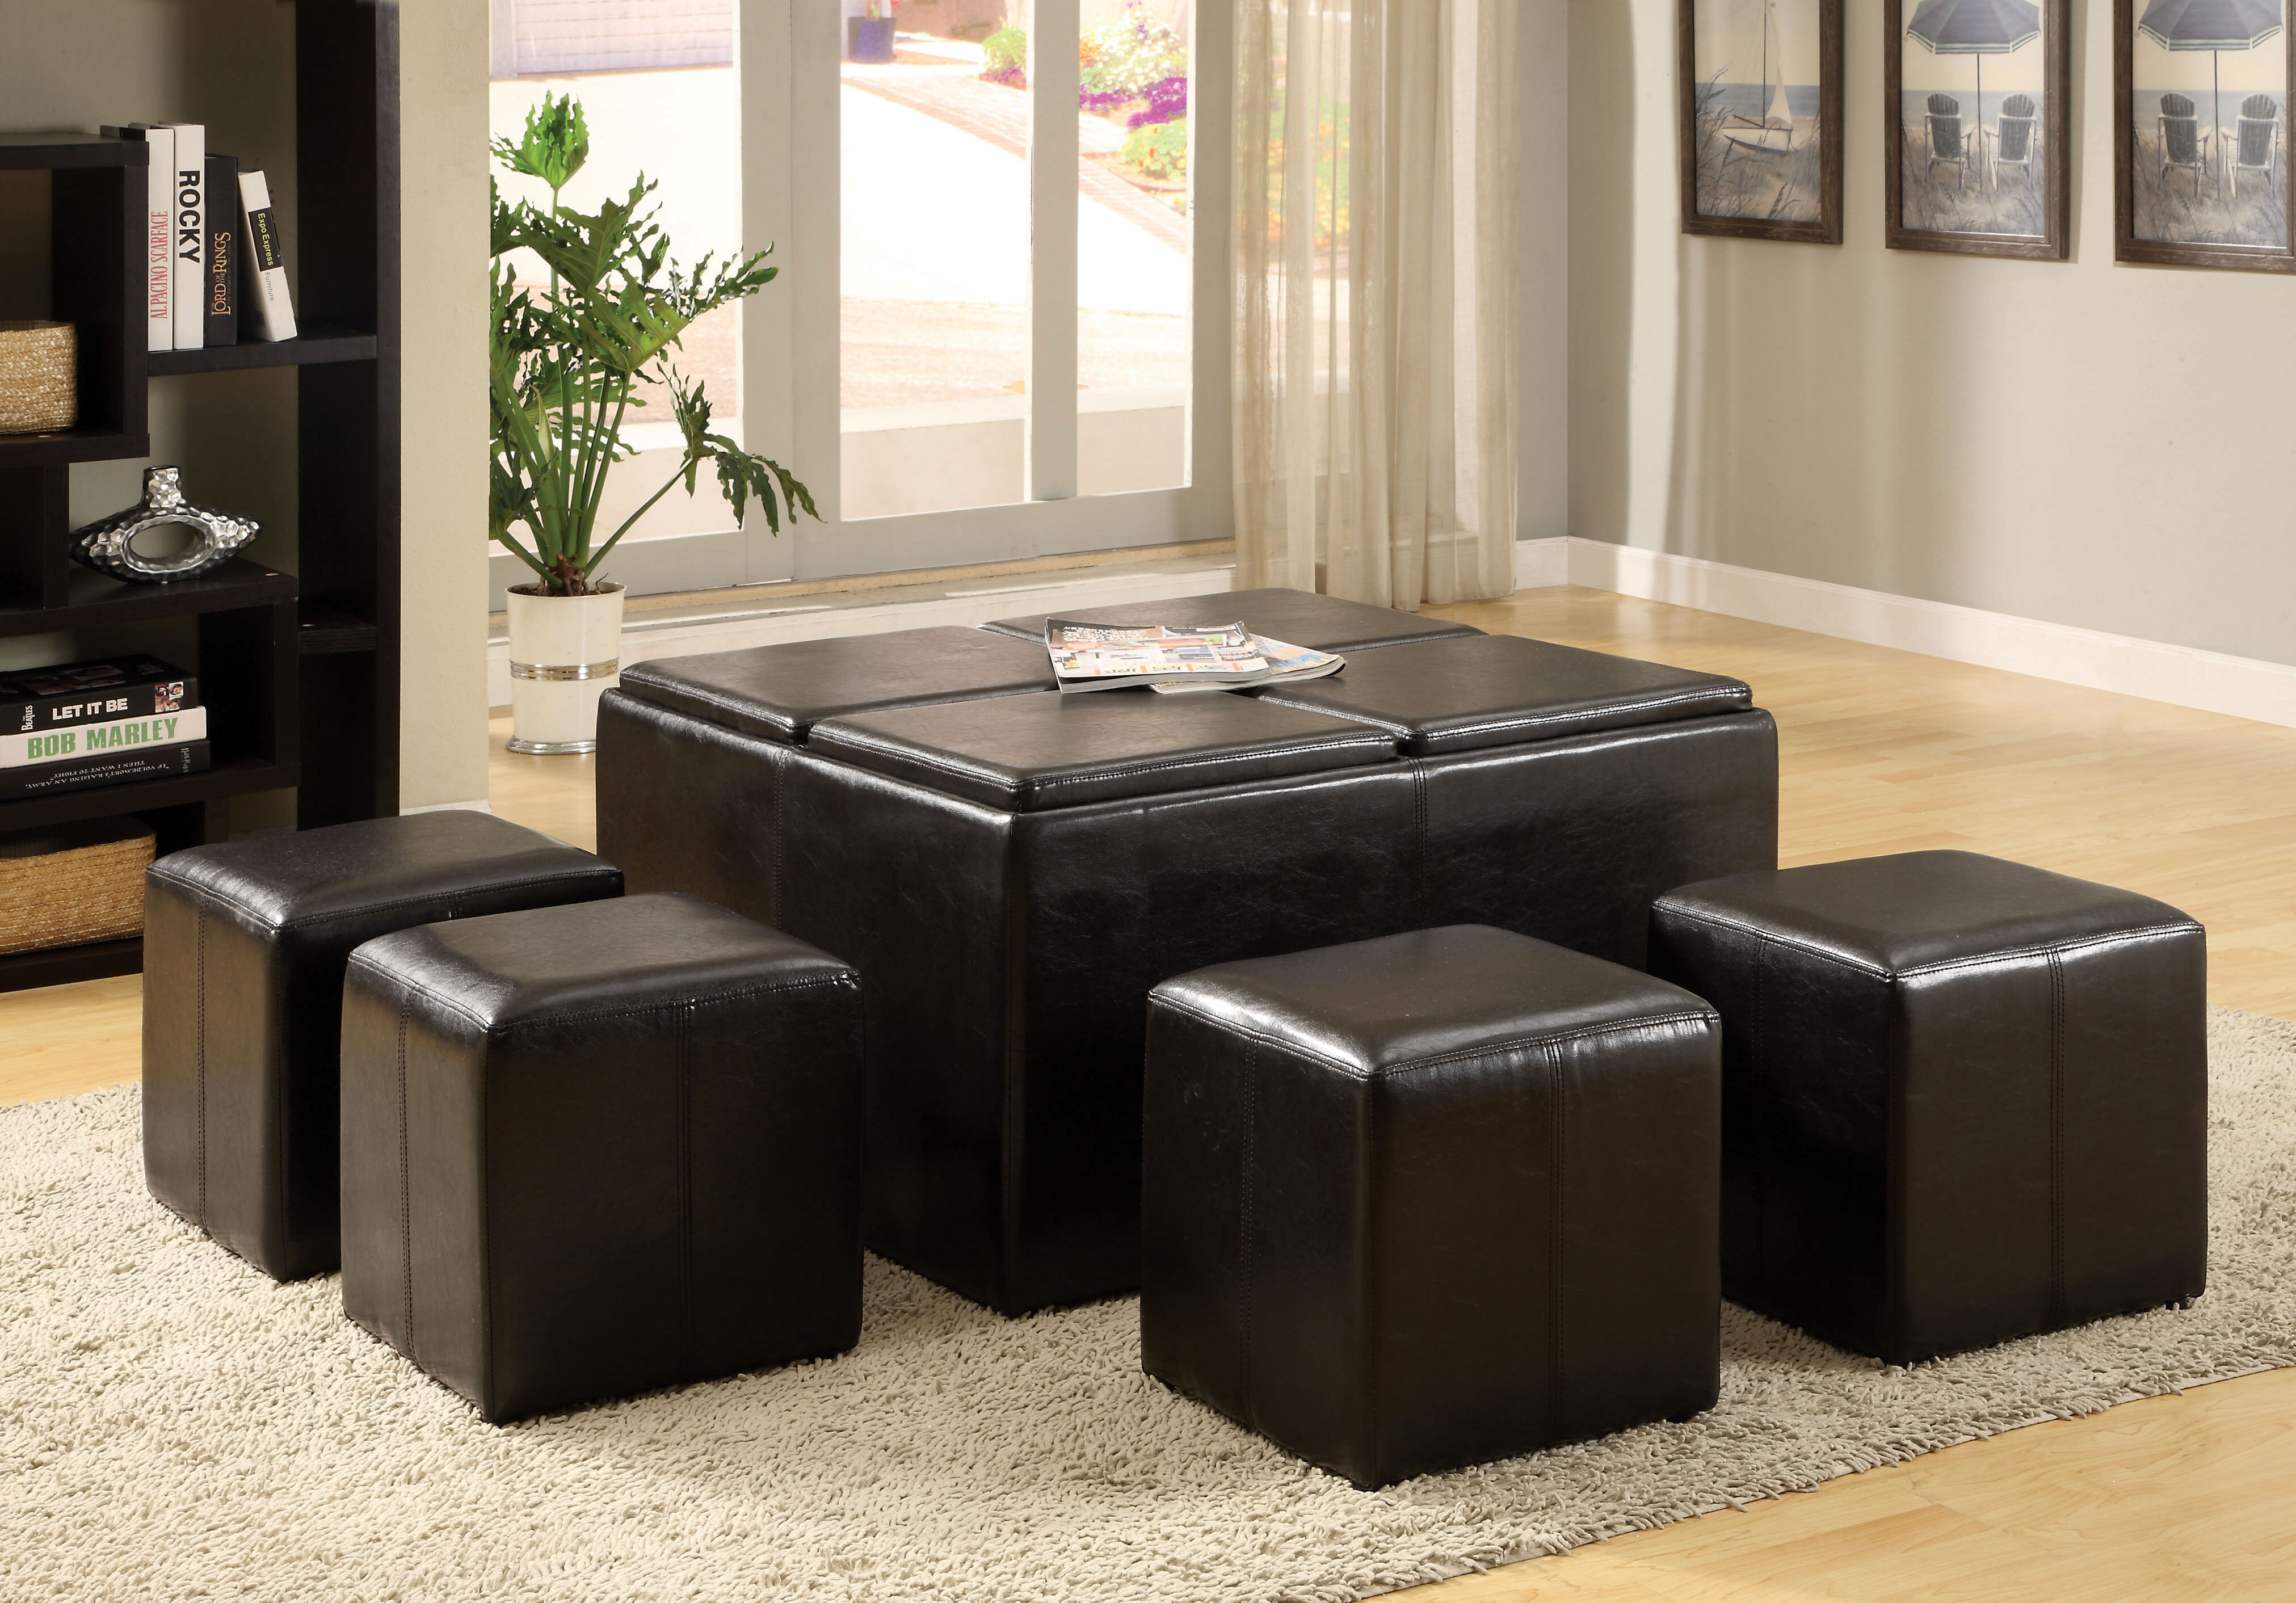 Darby Home Co Turner 5 Piece Coffee Table Ottoman Set U0026 Reviews | Wayfair